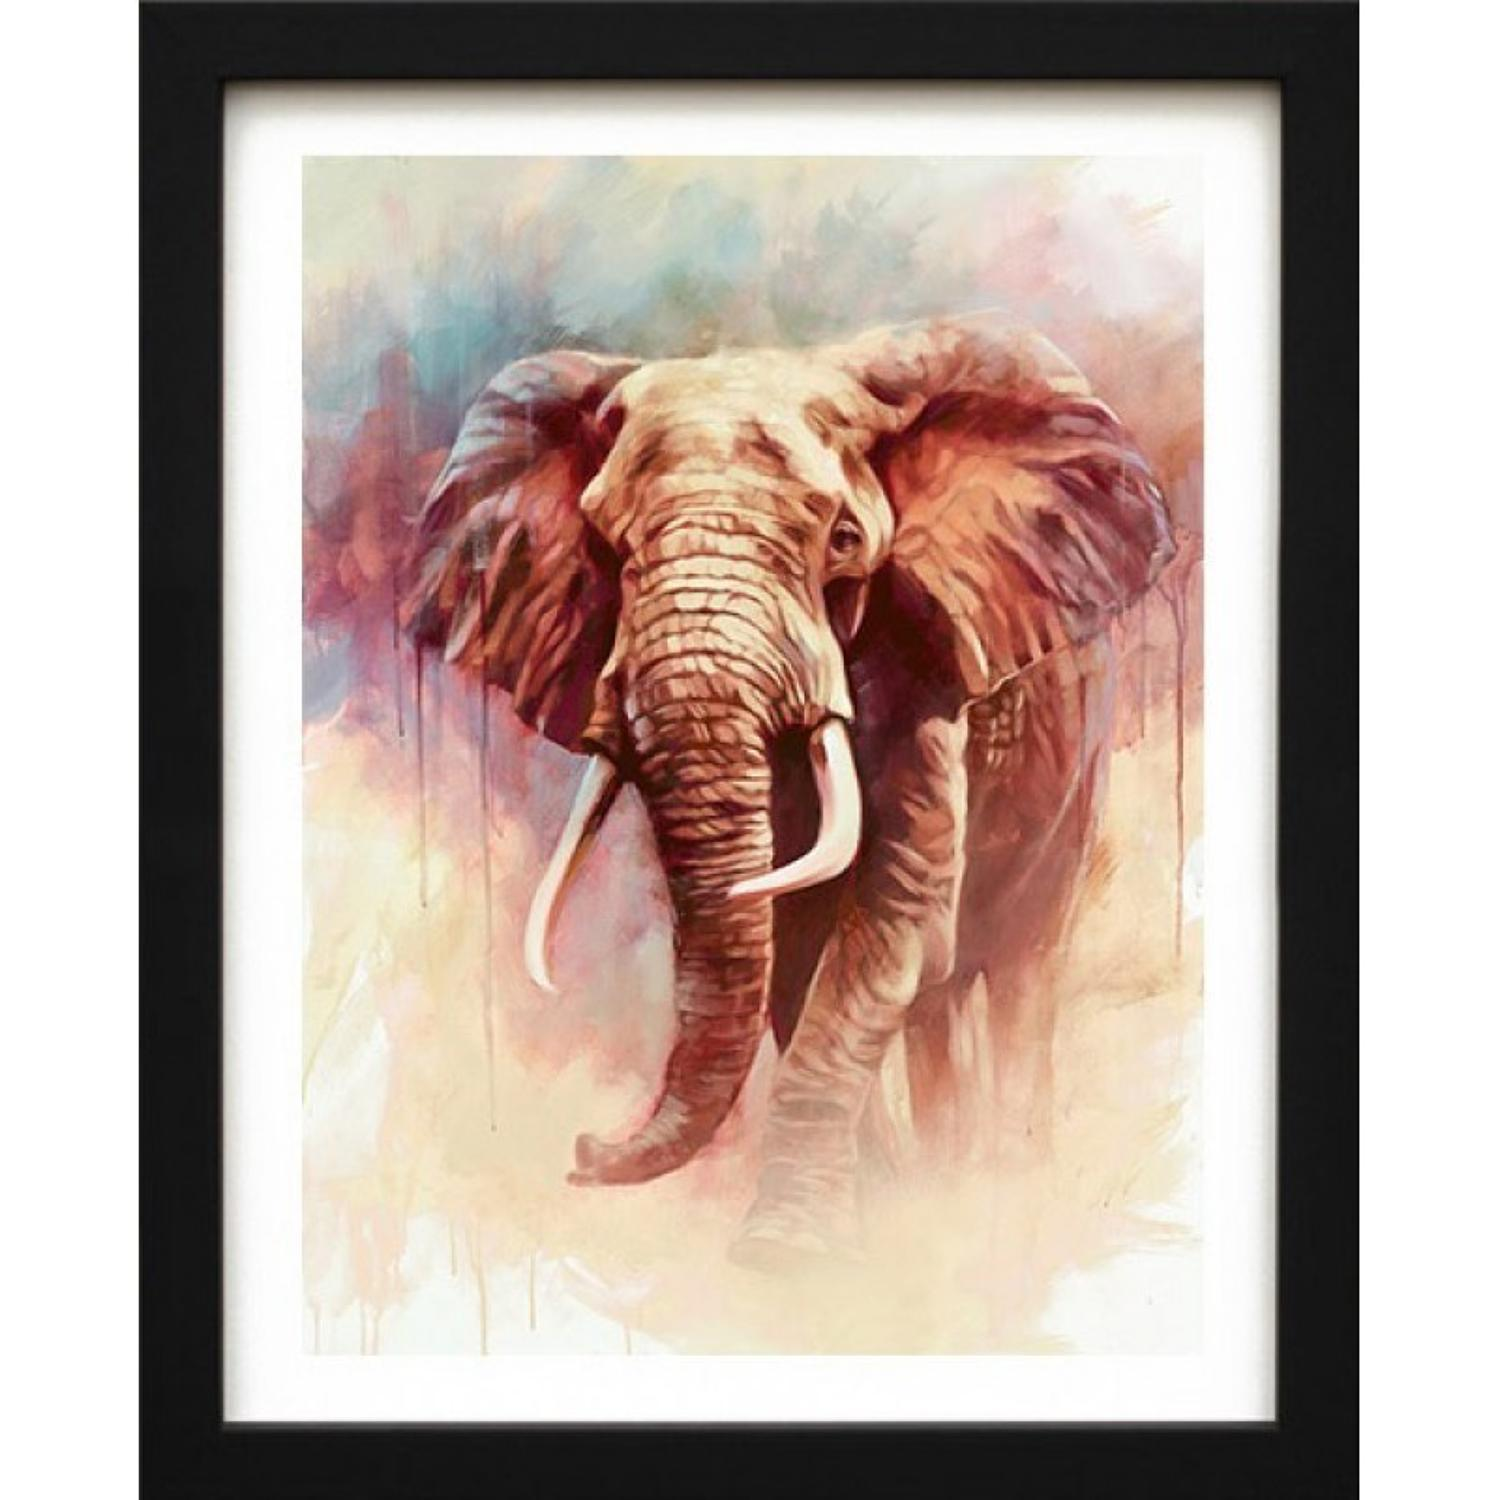 Gentle Giant - Framed Canvas Art Print by Ben Jeffrey